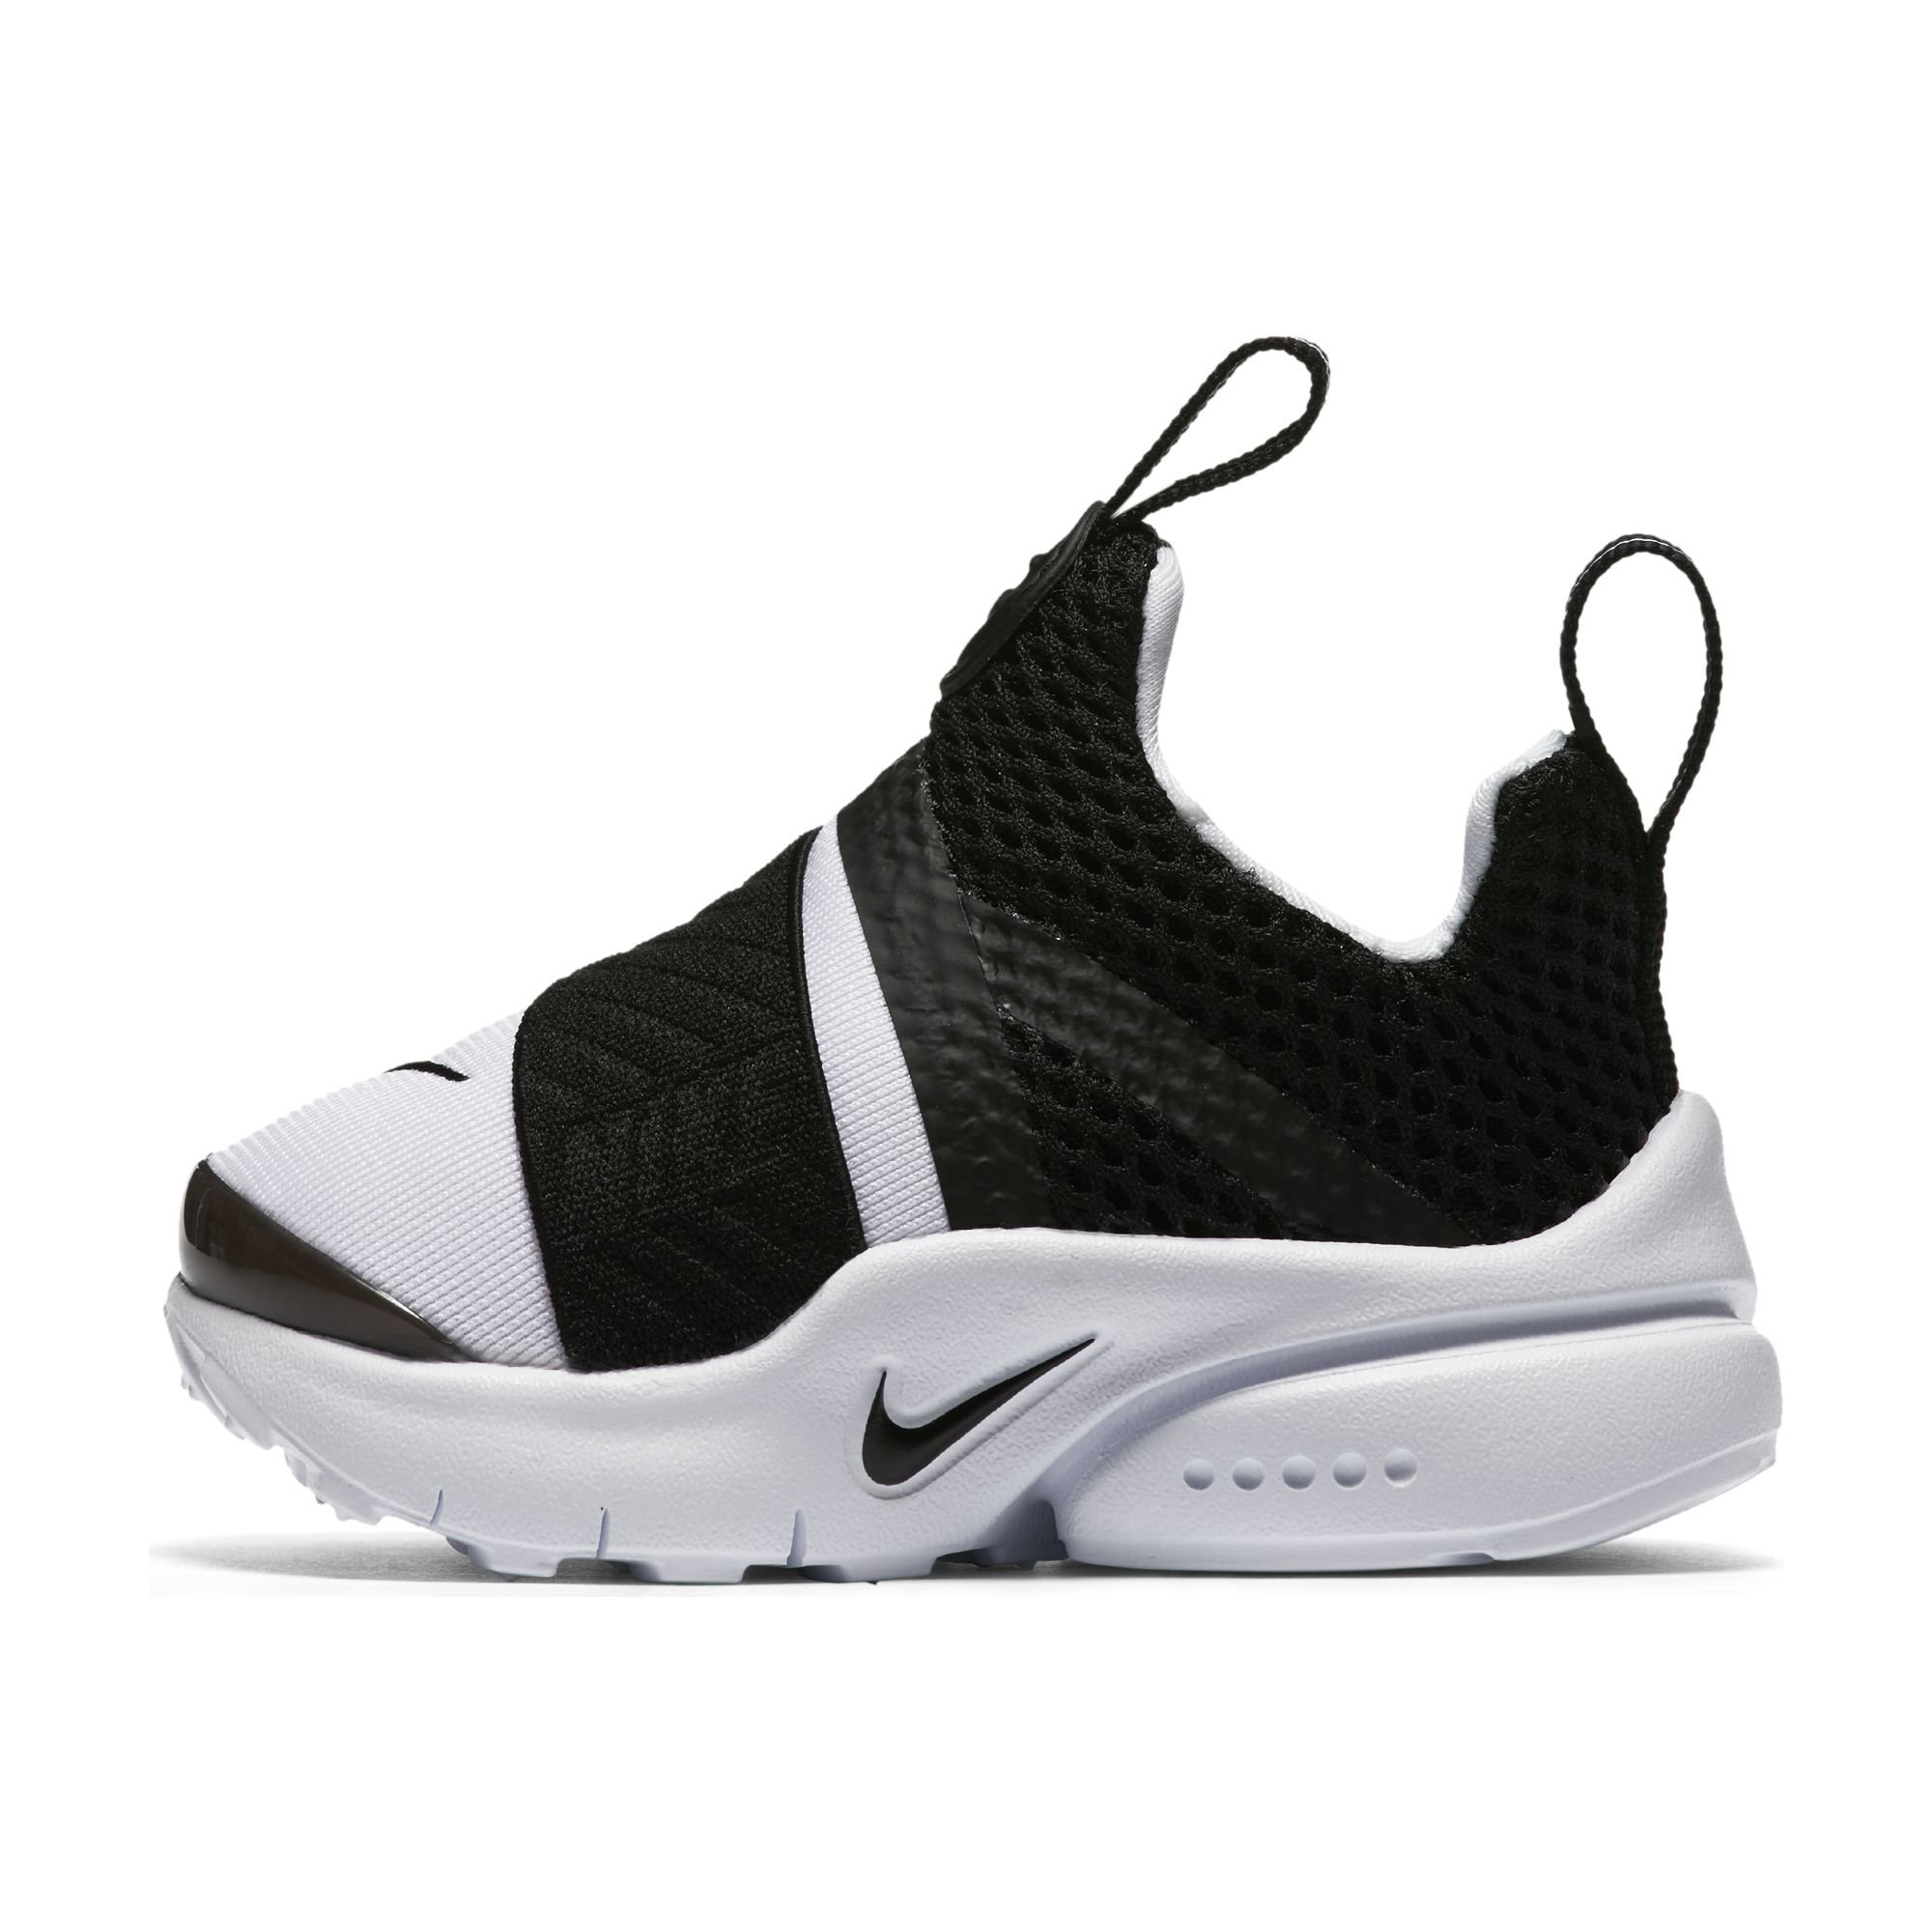 super popular 74071 0ed71 Galleon - Nike Presto Extreme Toddler s Running Shoes White Black  870019-100 (4 M US)